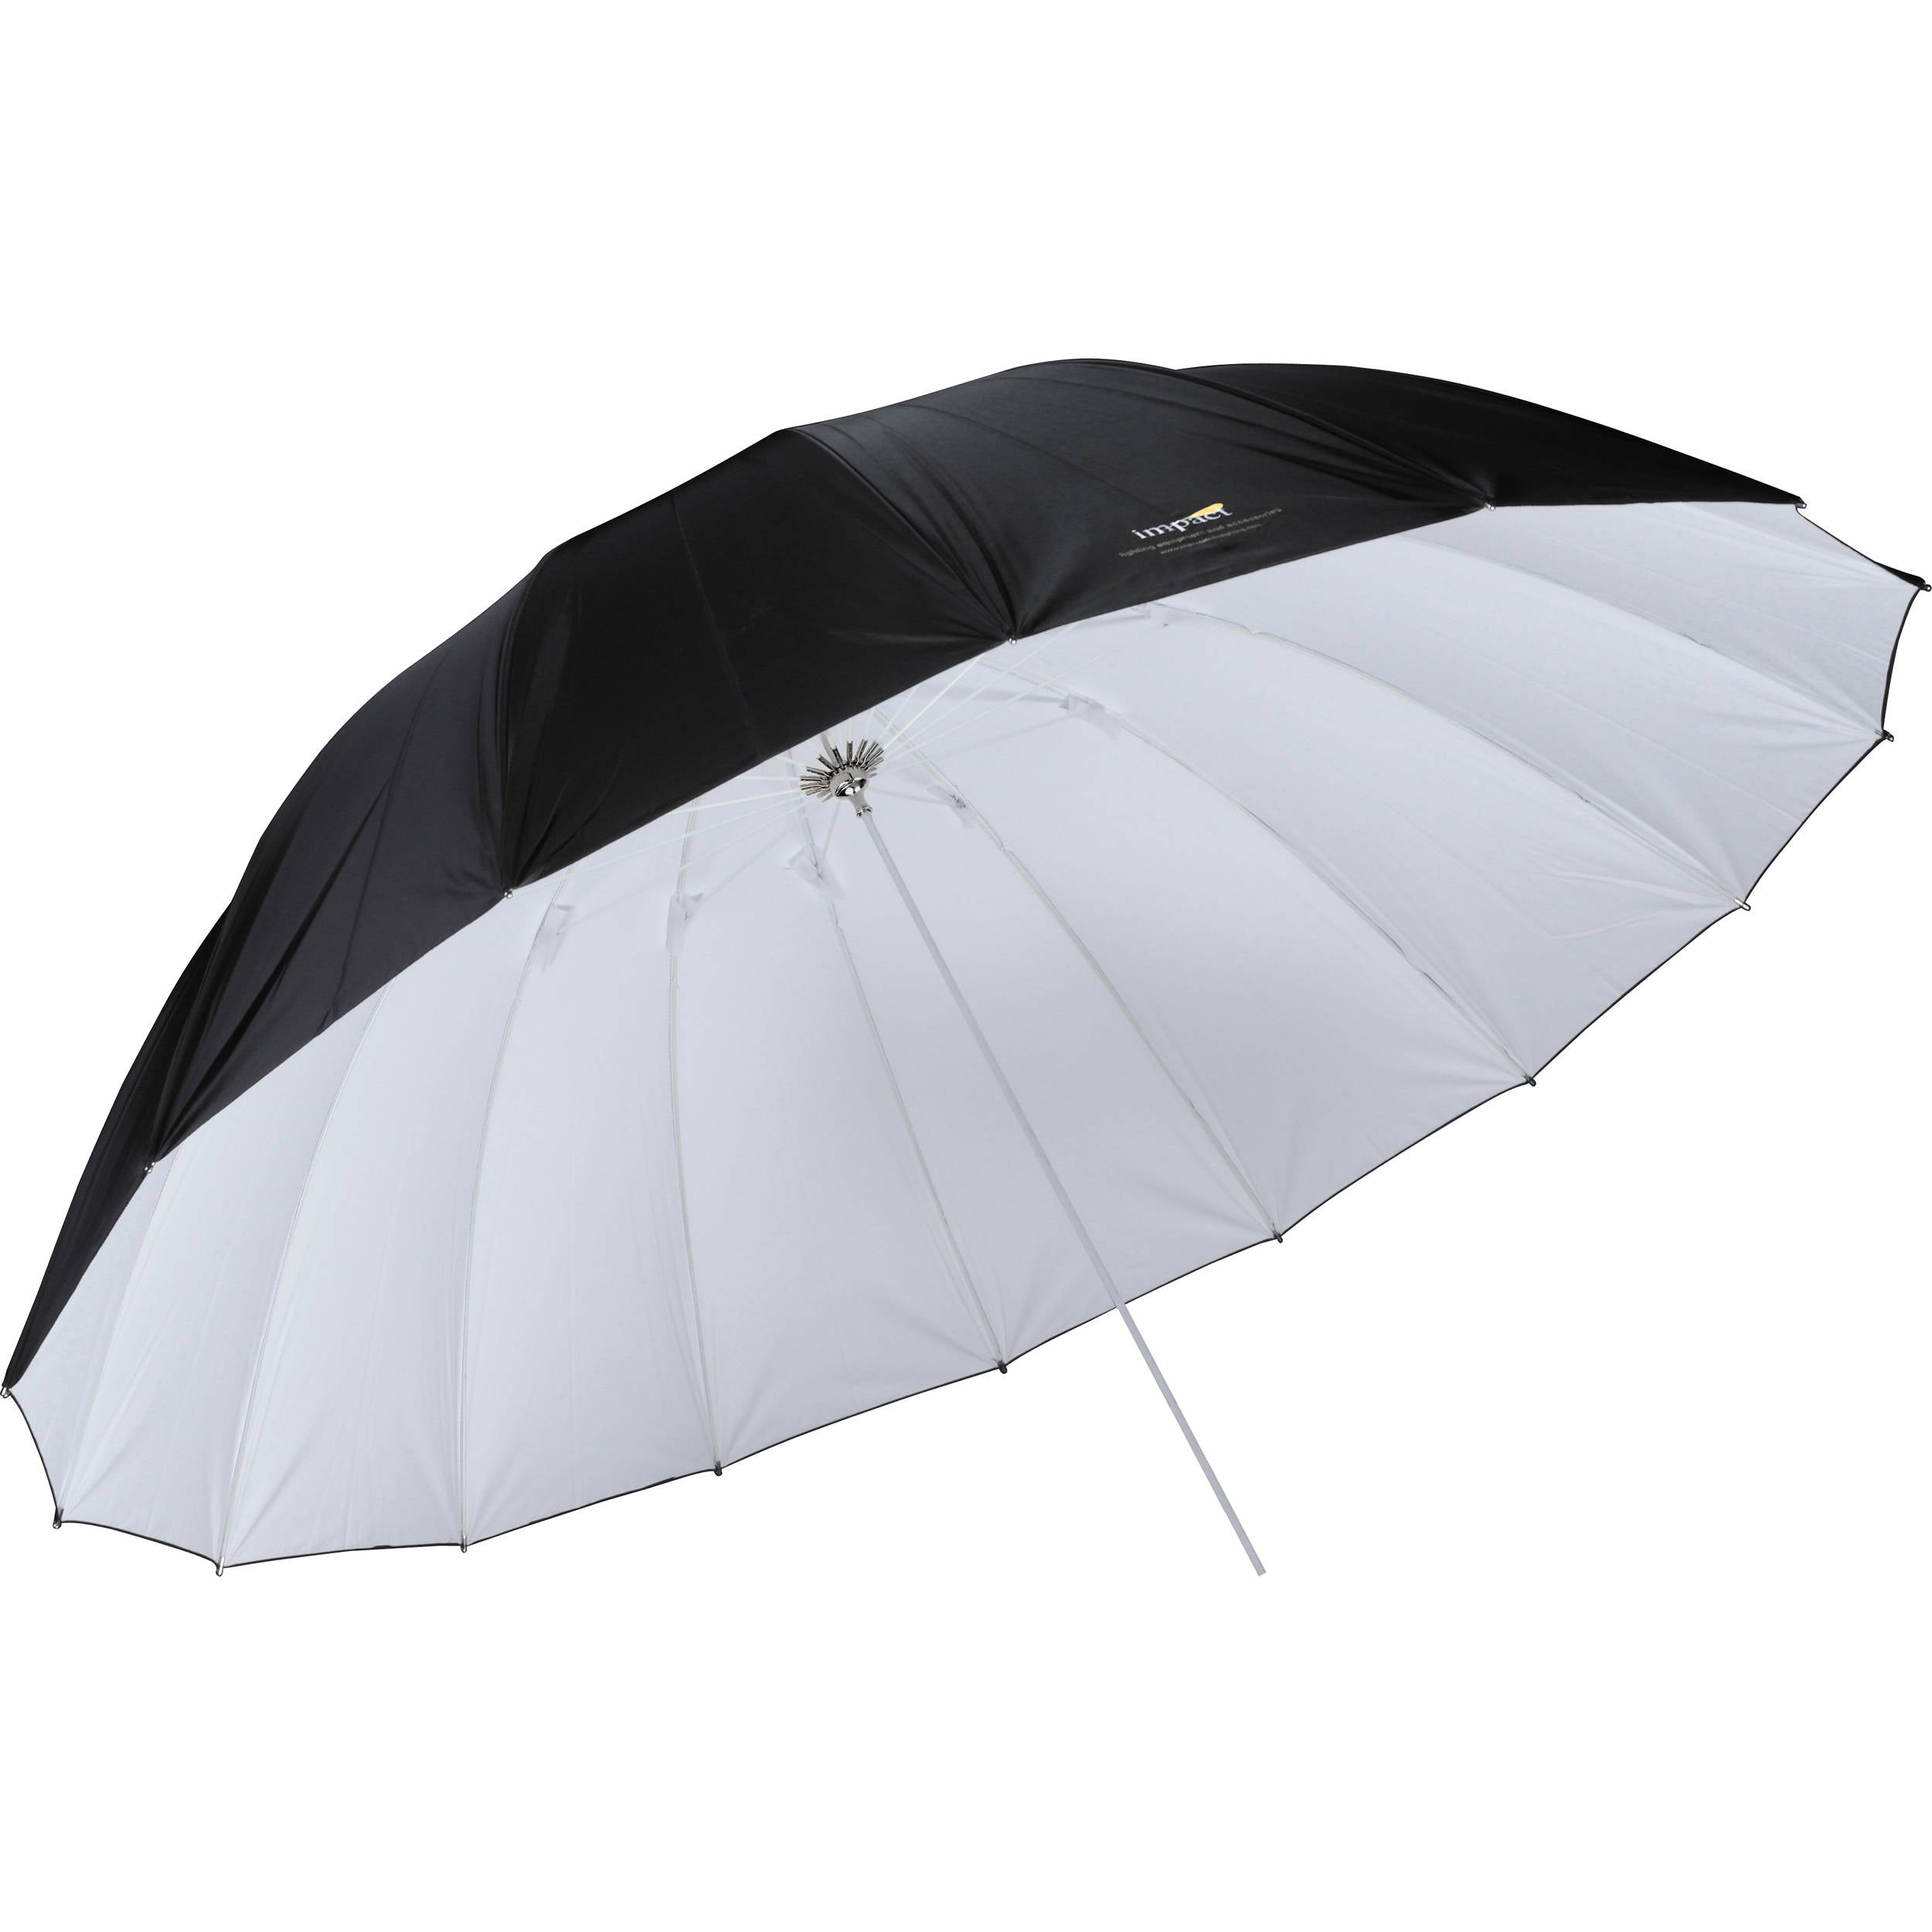 Impact 7' Improved Parabolic Umbrella (White/Black)